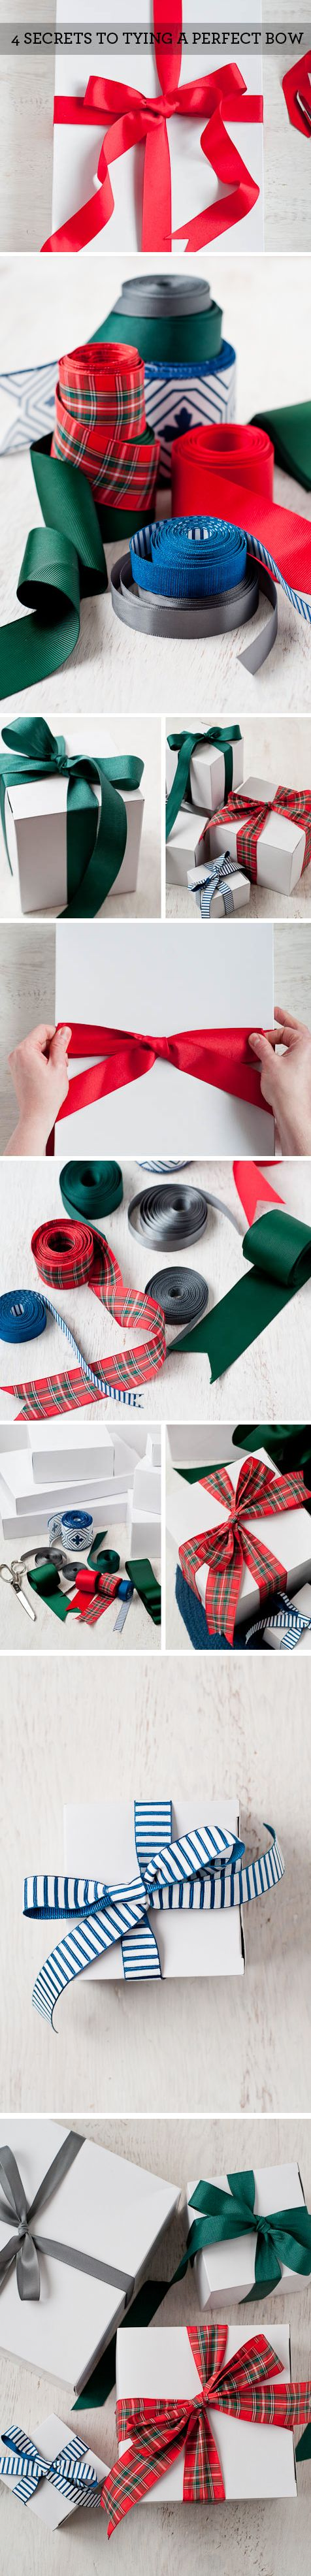 Living Well: 4 Secrets To Tying a Perfect Bow: #tutorial #bow #christmas #gift #package #ribbon #diy http://www.designmom.com/category/make-something/page/4/